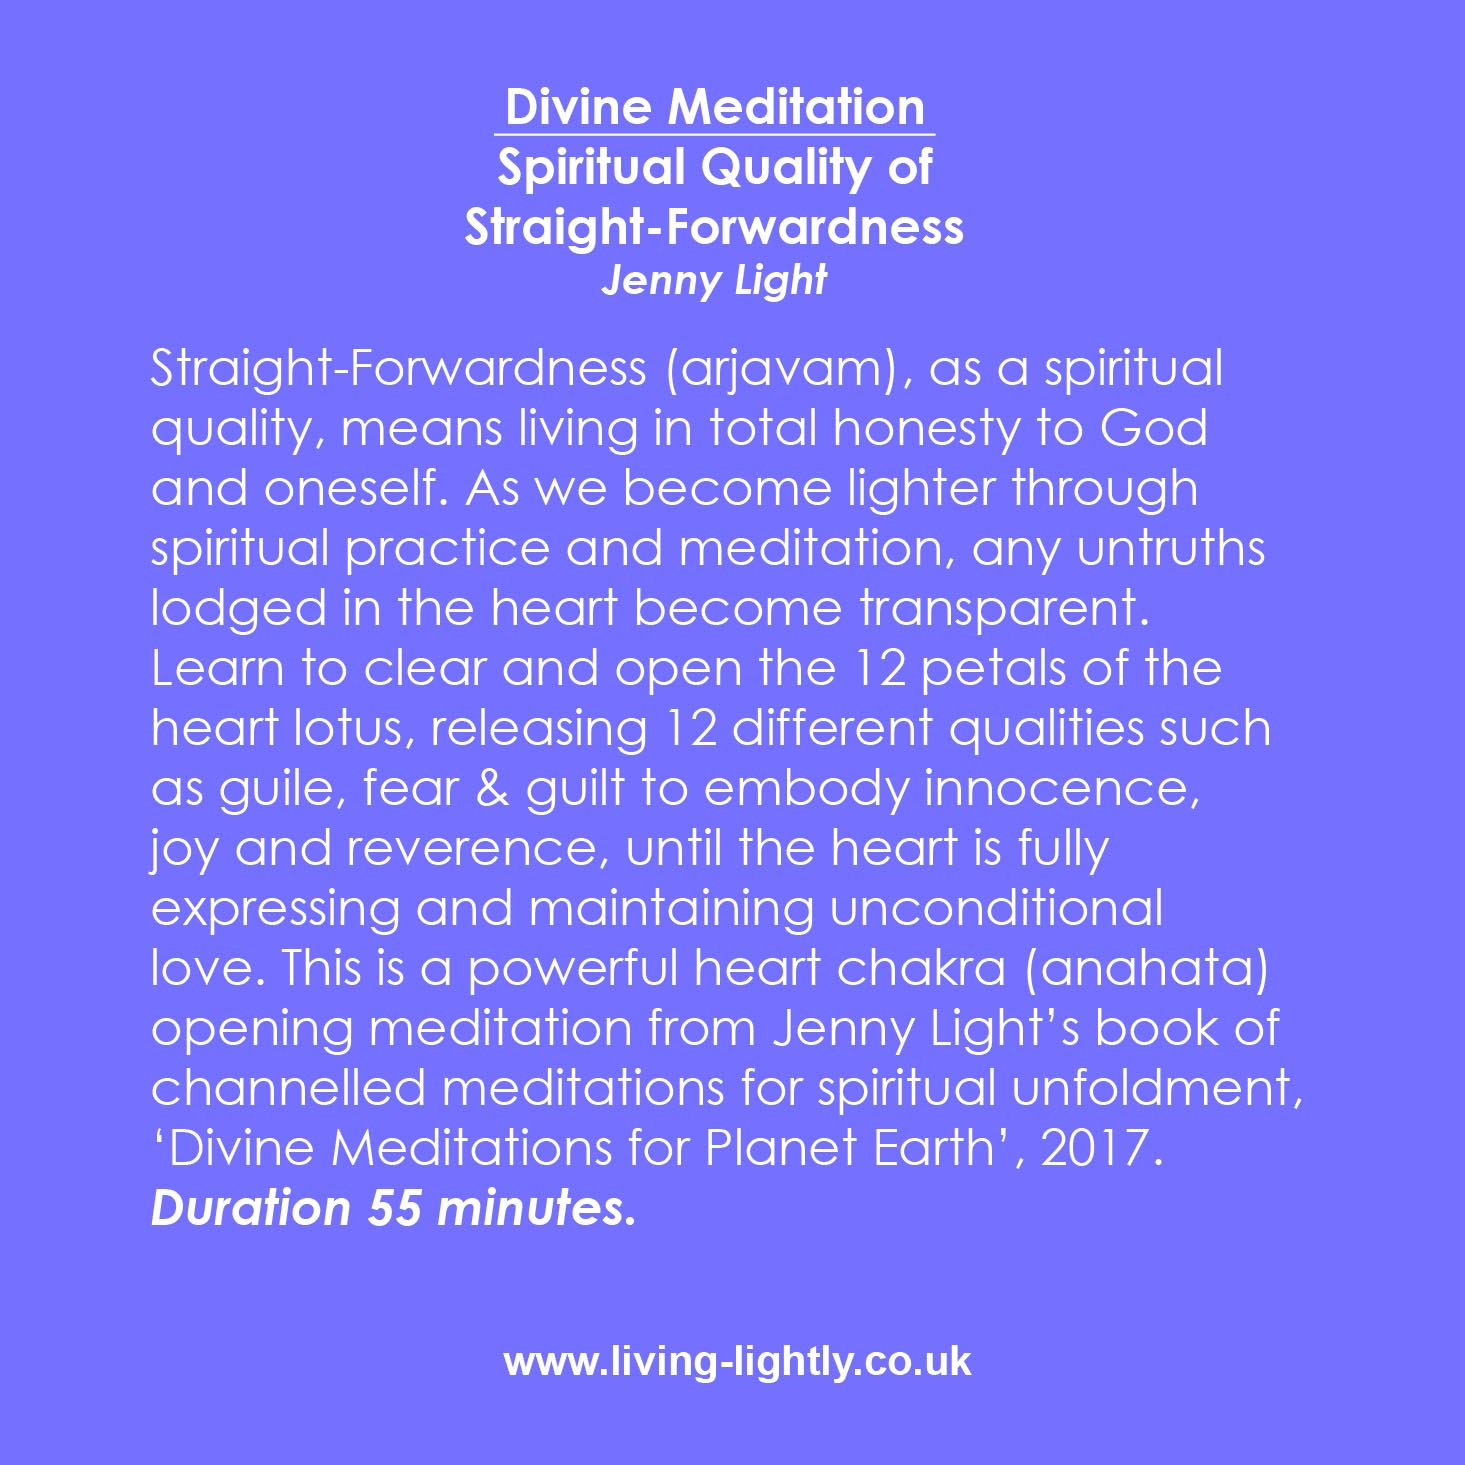 Meditation  CD/MP3 to accompany  'Divine Meditations. '  Cost £10 + (£2 P&P for CD)